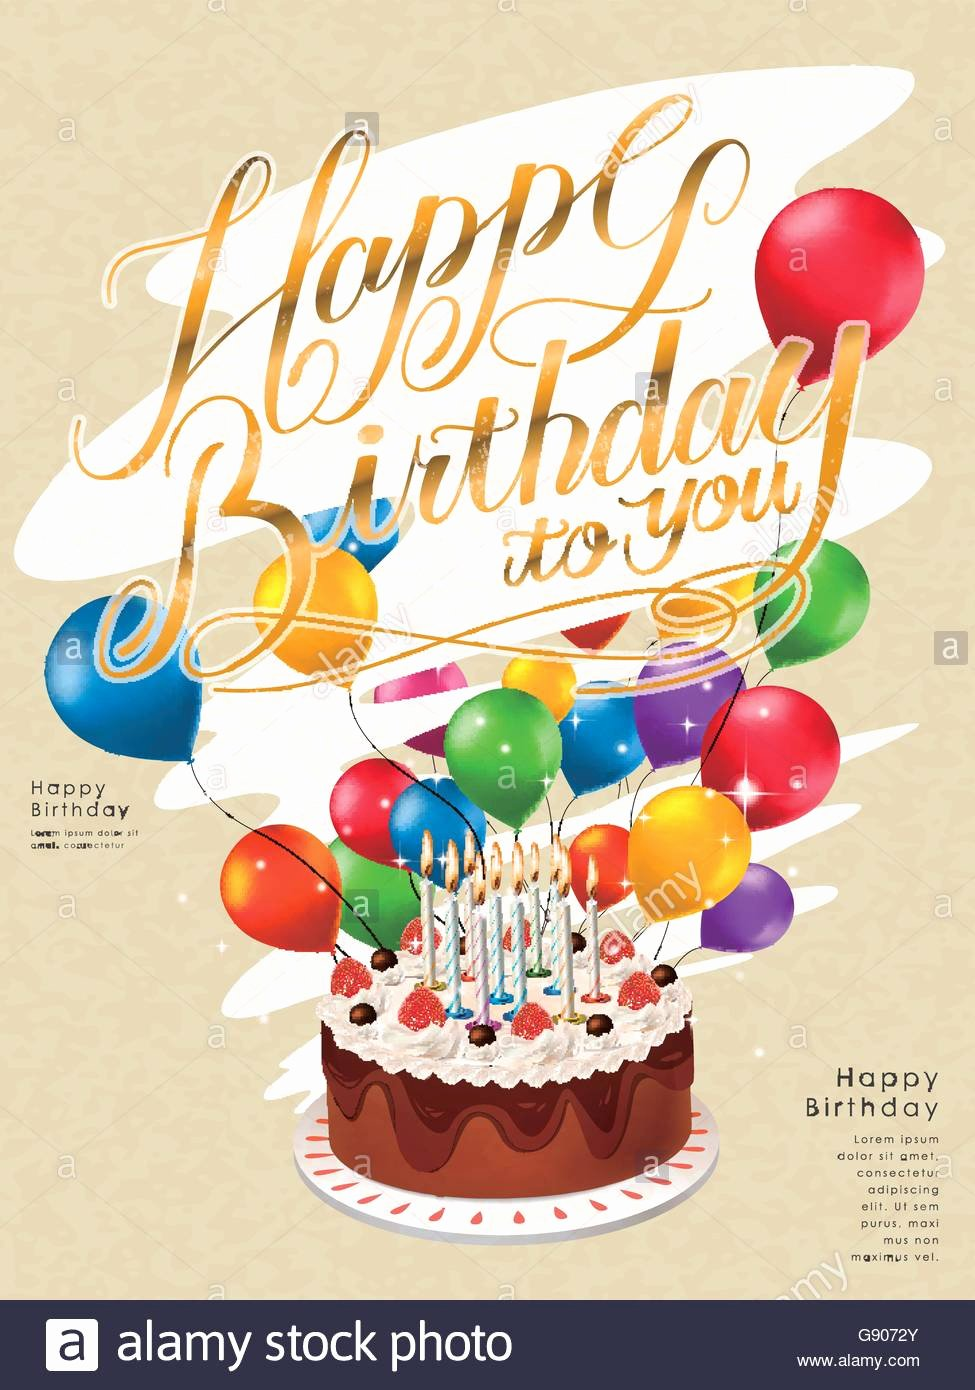 Happy Birthday Poster Template Design with Lovely Cake and